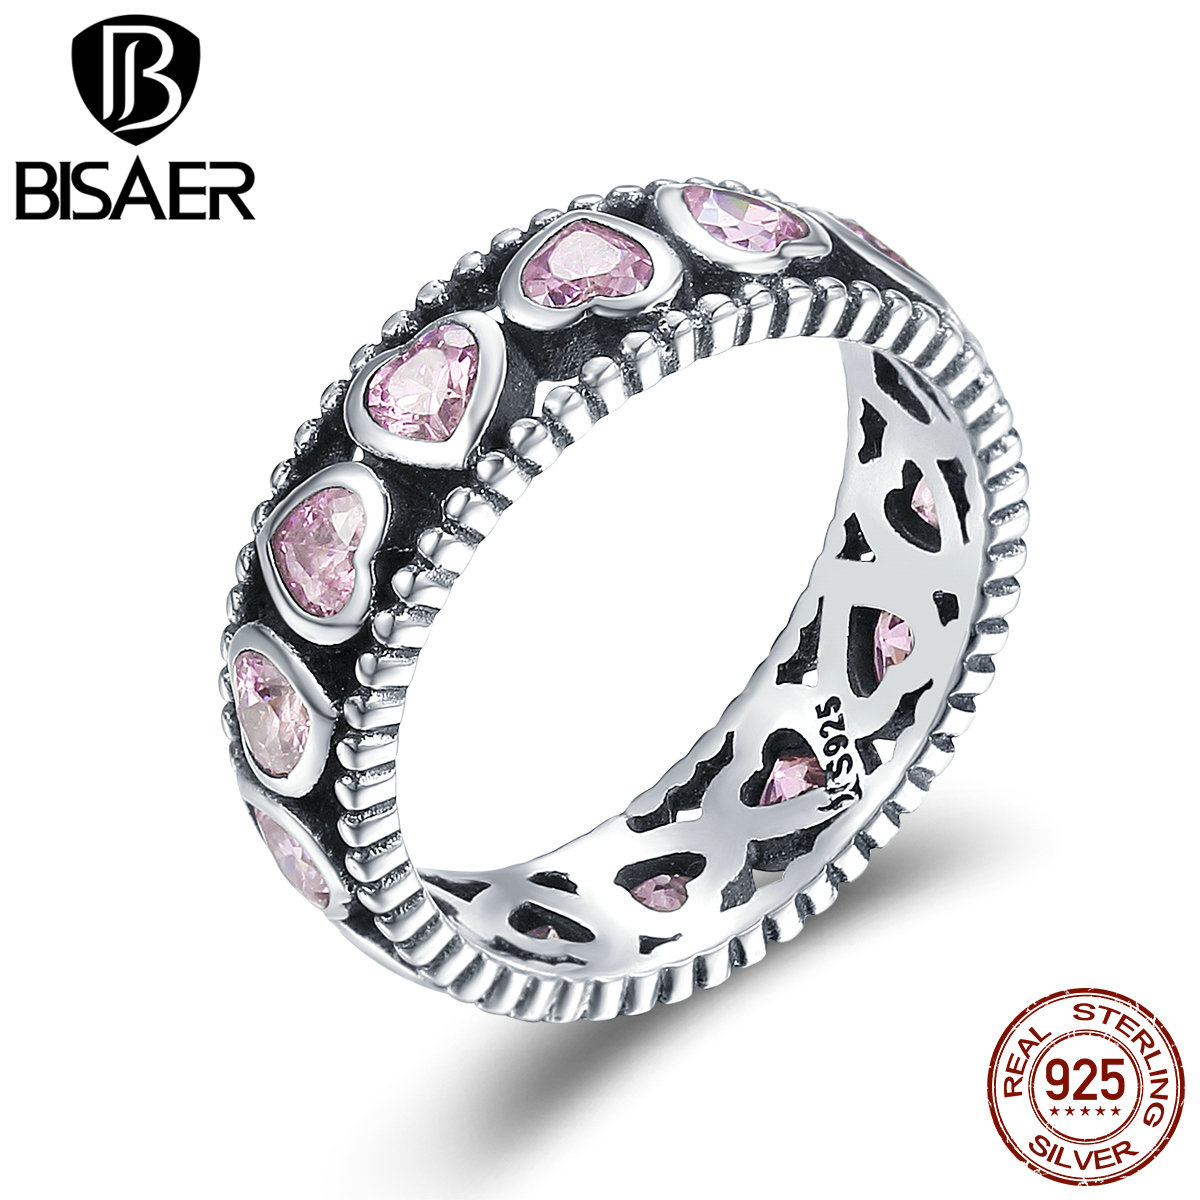 BISAER 925 Sterling Silver Stackable Ring Radiant Heart Pink Crystal CZ Finger Rings for Women Wedding Engagement Jewelry GXR166